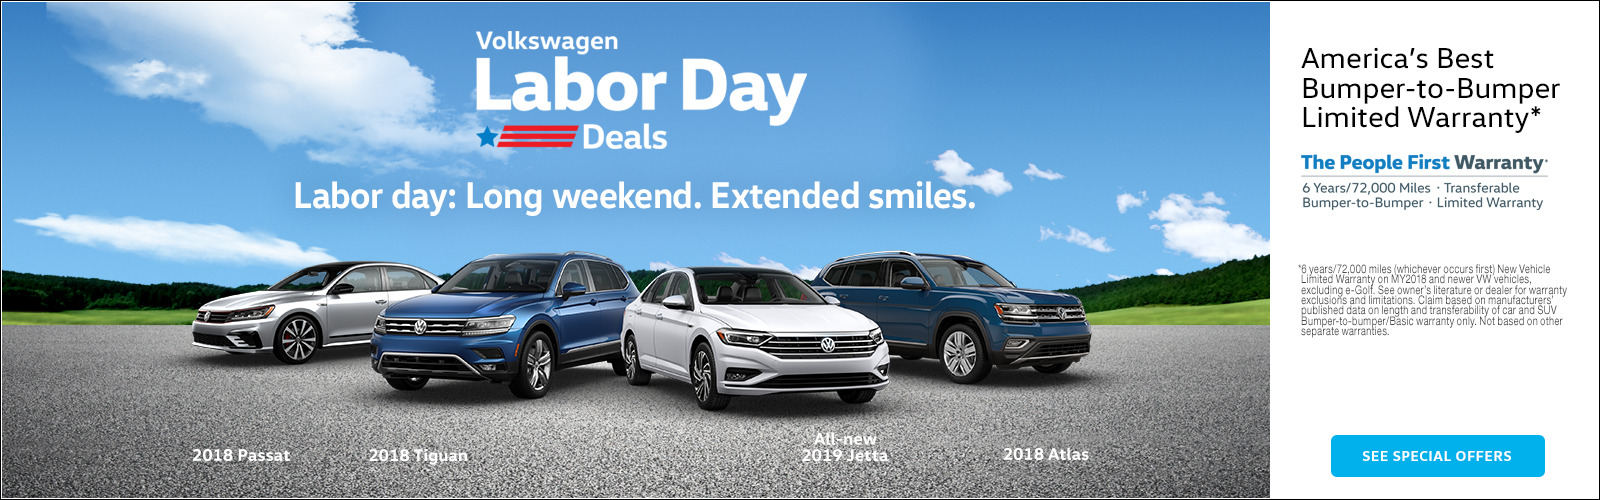 Volkswagen Labor Day